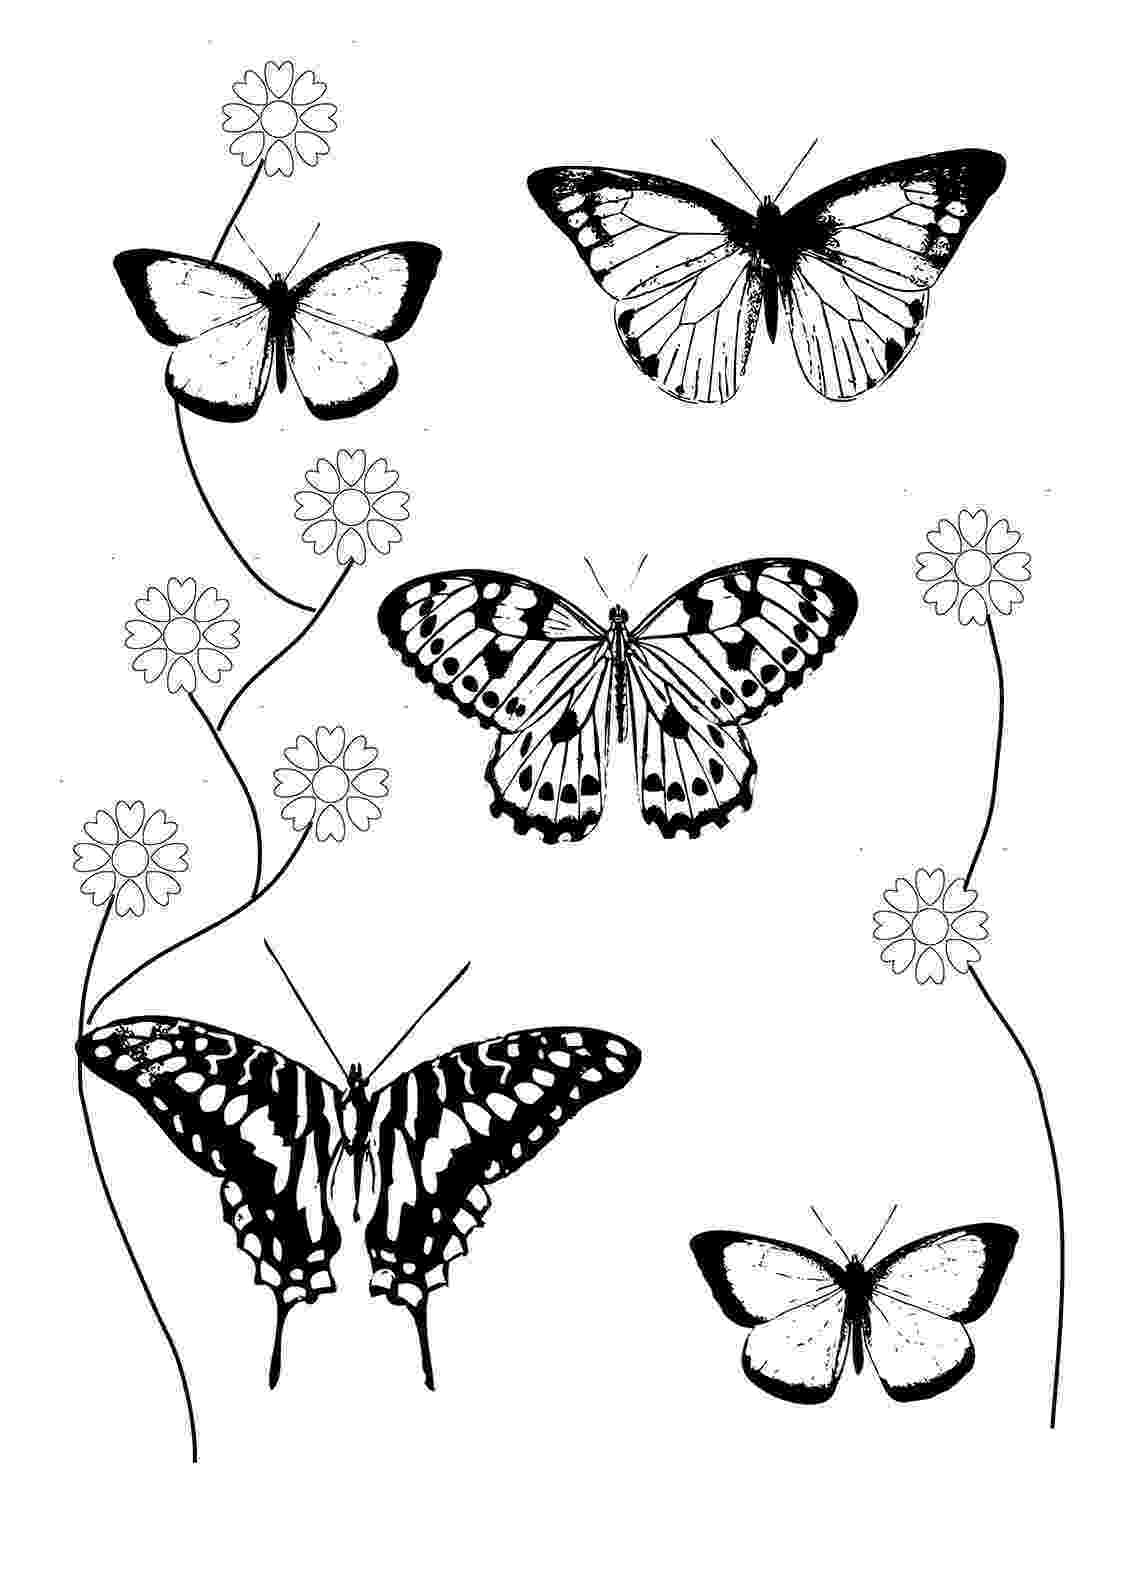 coloring pages of butterflies and flowers 75 best images about butterfly coloring pages on pinterest flowers of pages butterflies and coloring